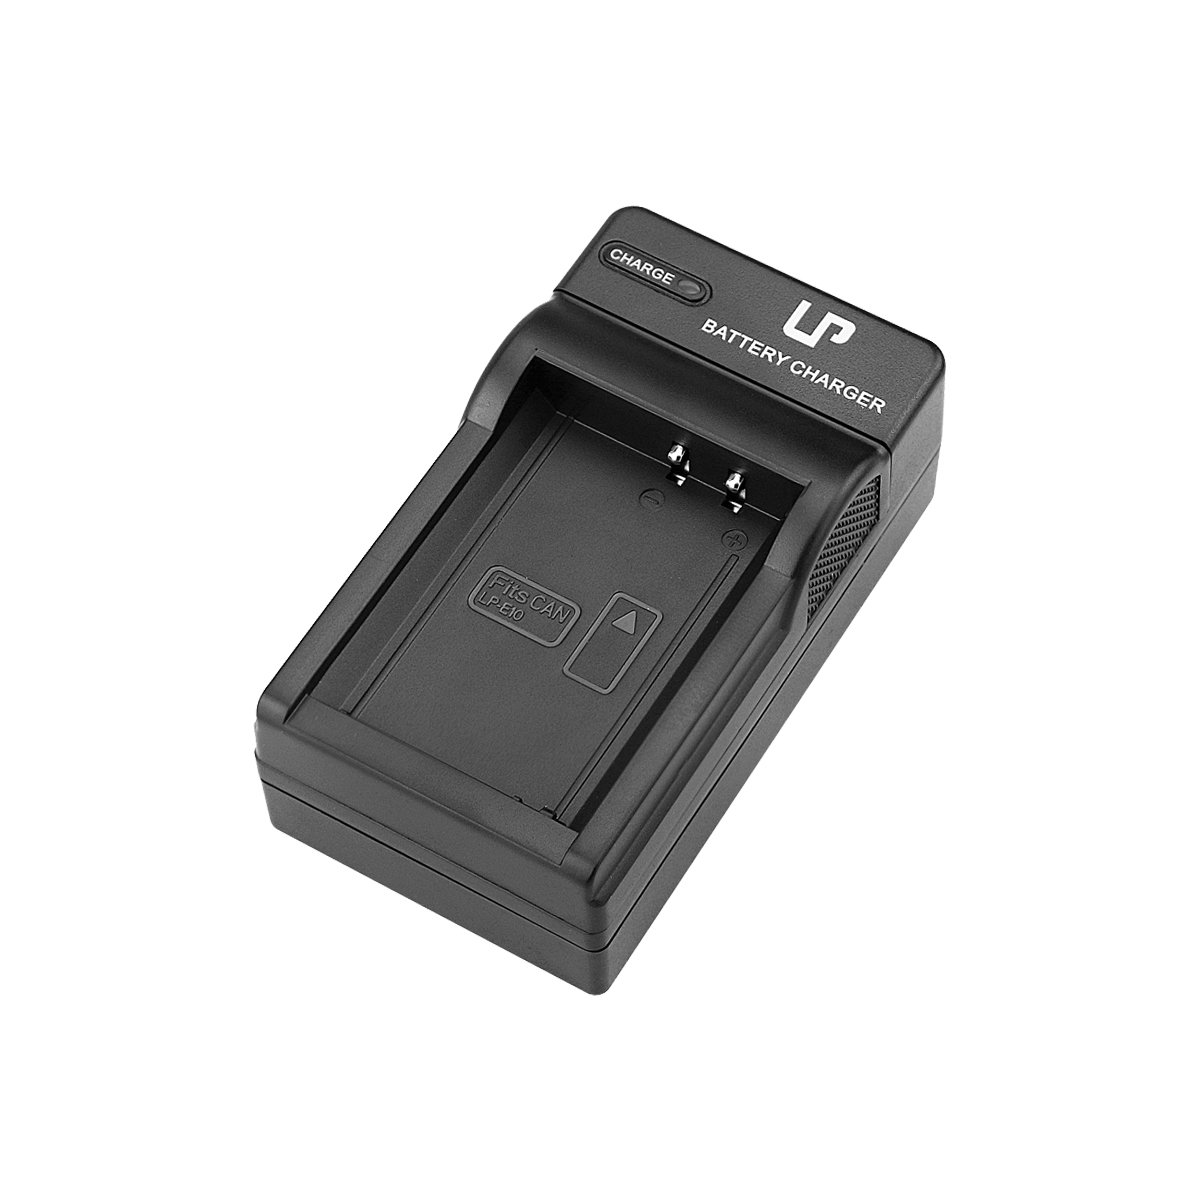 LC-E10 Charger for Canon LP-E10 Battery EOS 1100D kiss X50 Rebel T3 Camera